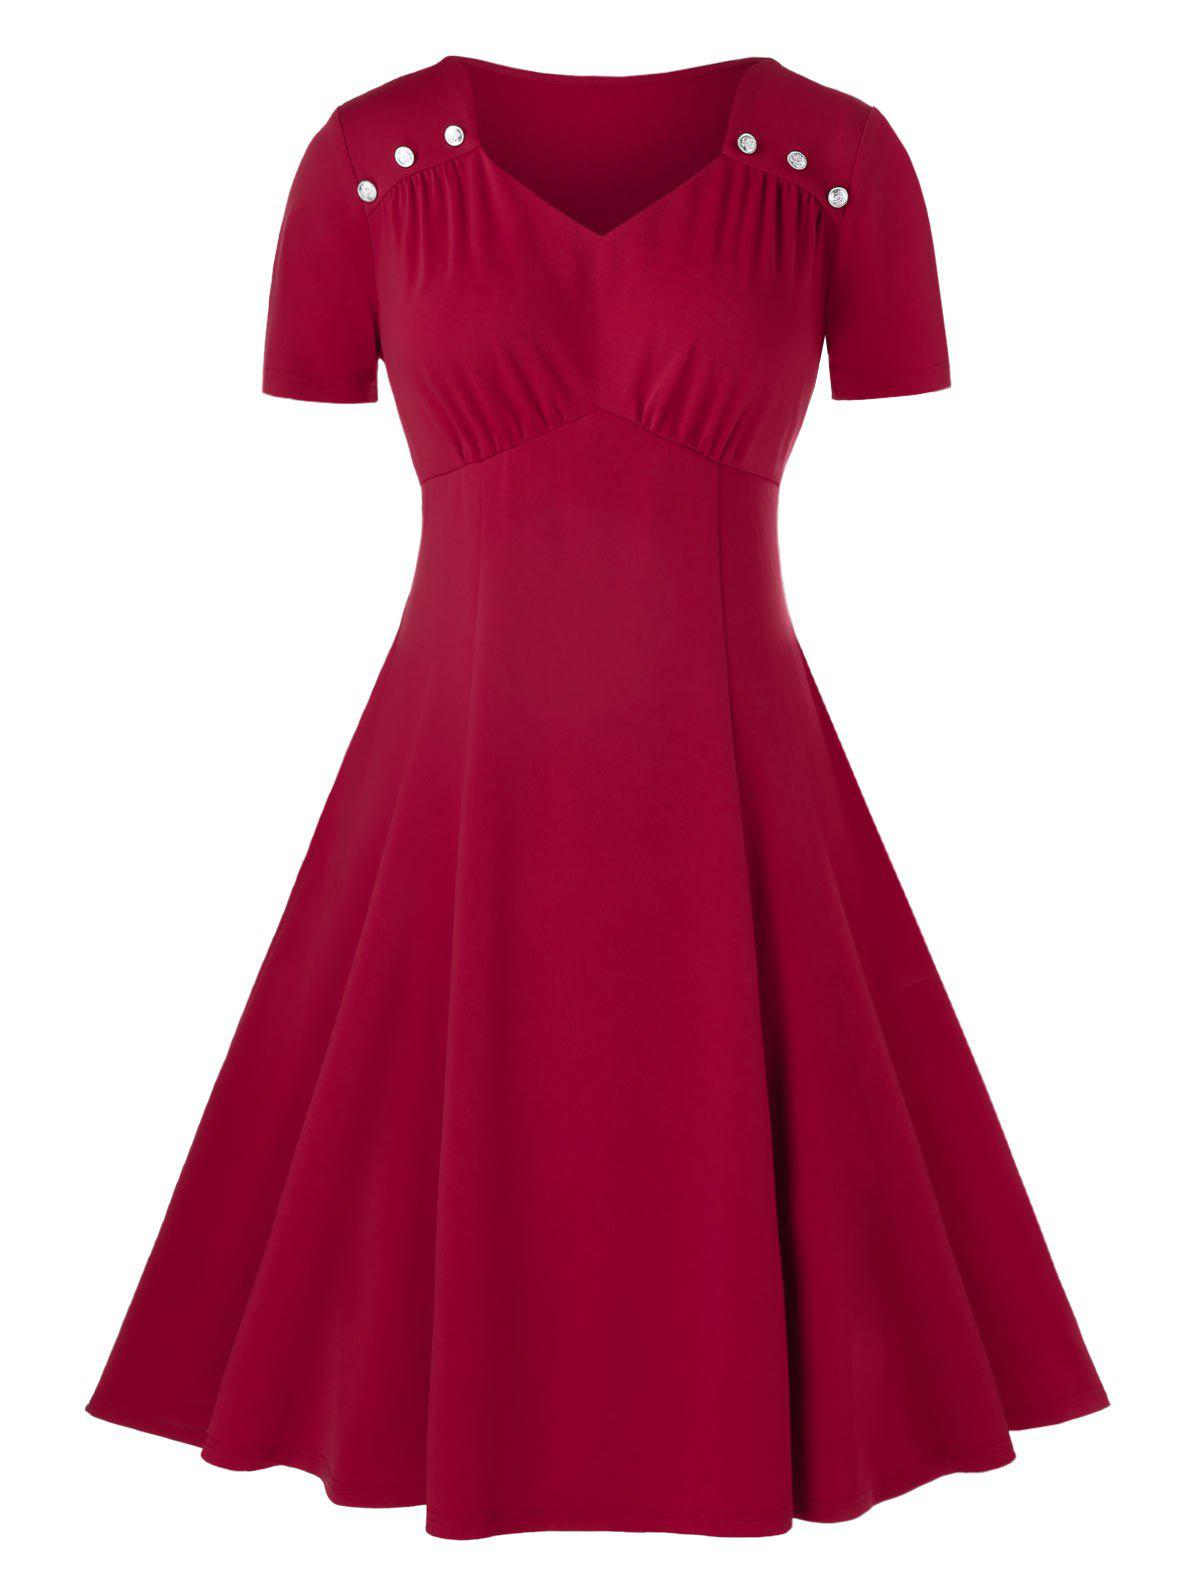 Plus Size Sweetheart Neck Ruched A Line Dress - RED WINE 5X